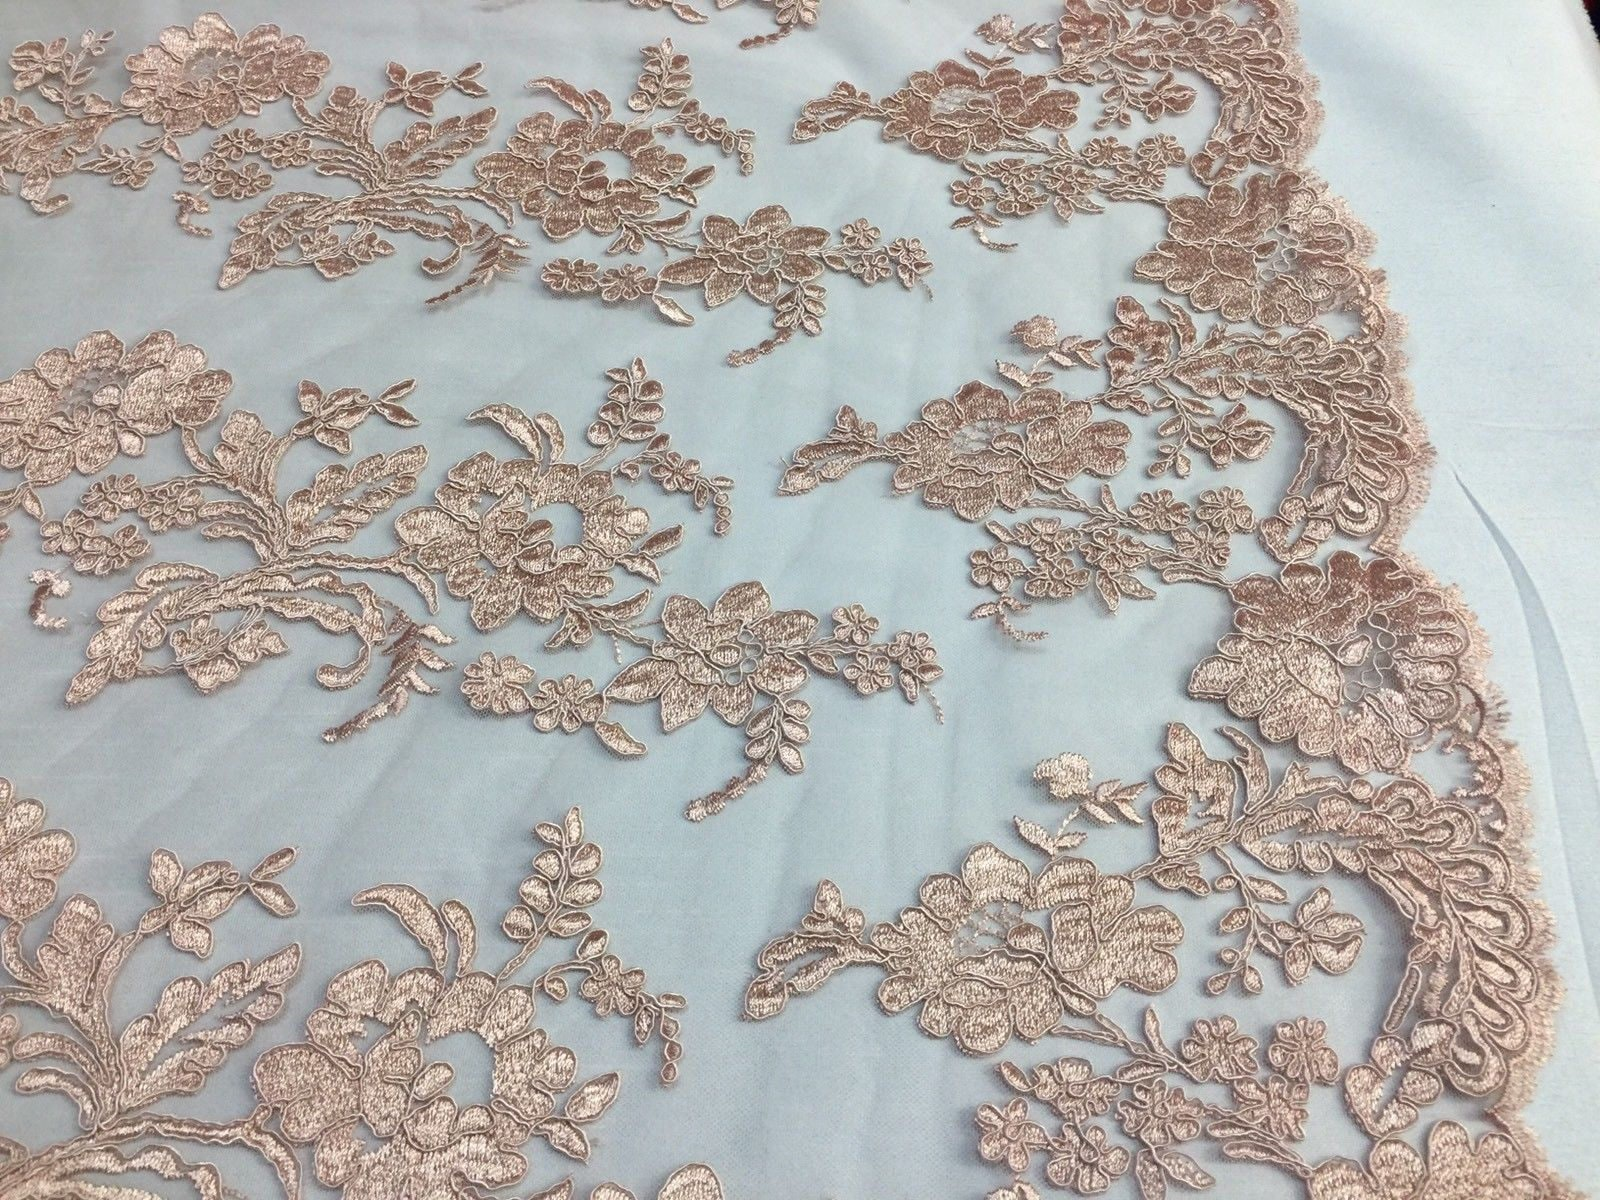 Embroidered Lace fabric - Blush Flower/Floral Corded Mesh Bridal ...